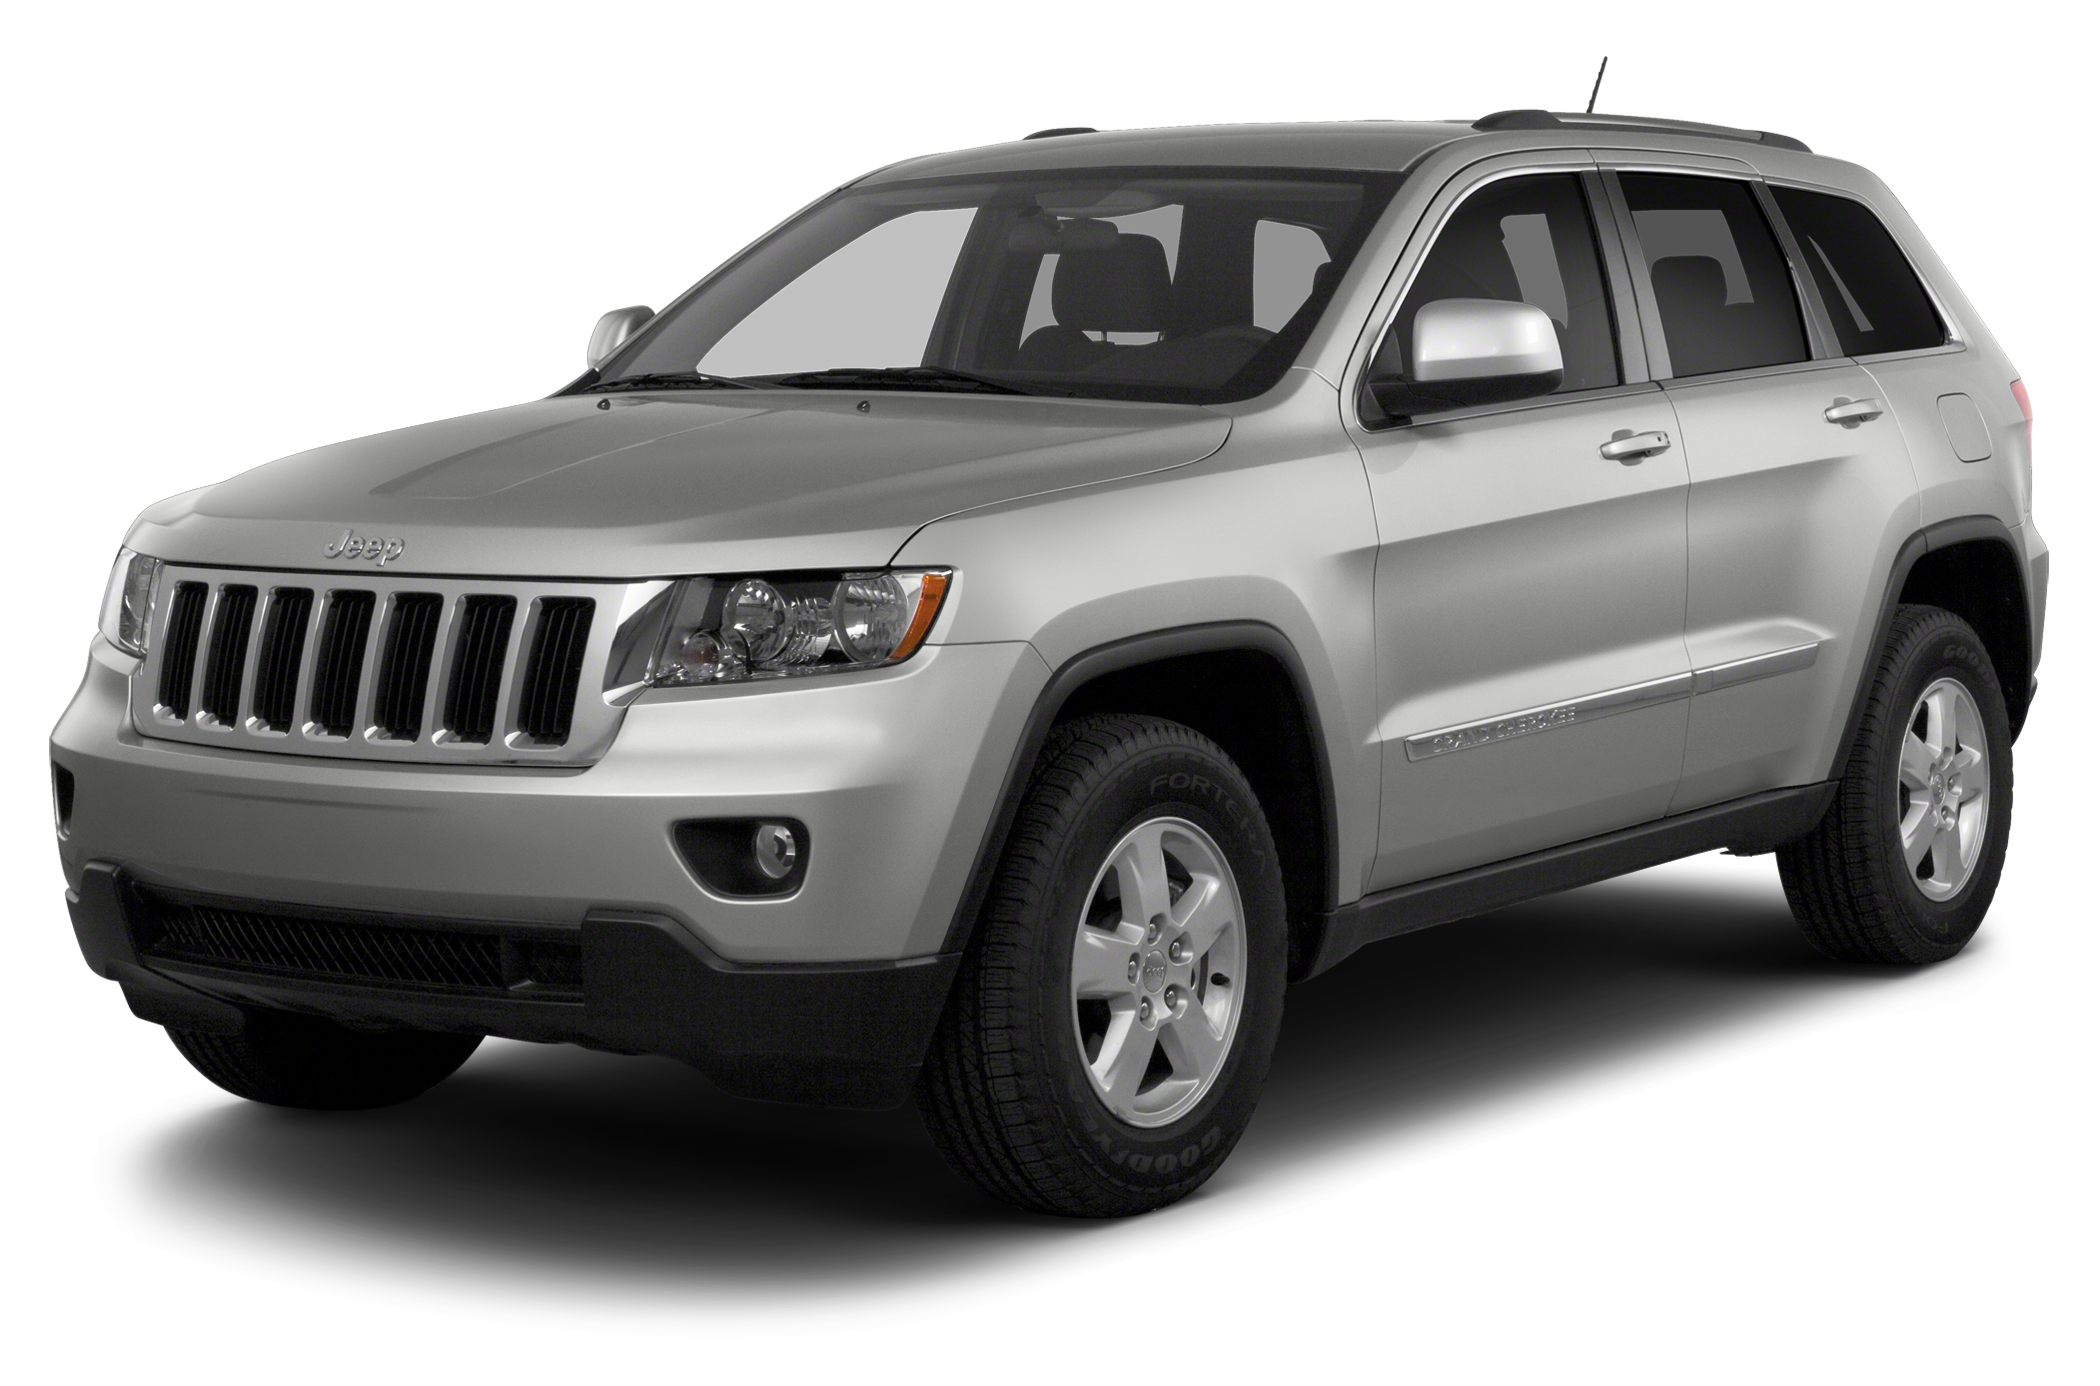 2013 Jeep Grand Cherokee Limited SUV for sale in Amarillo for $31,980 with 30,674 miles.